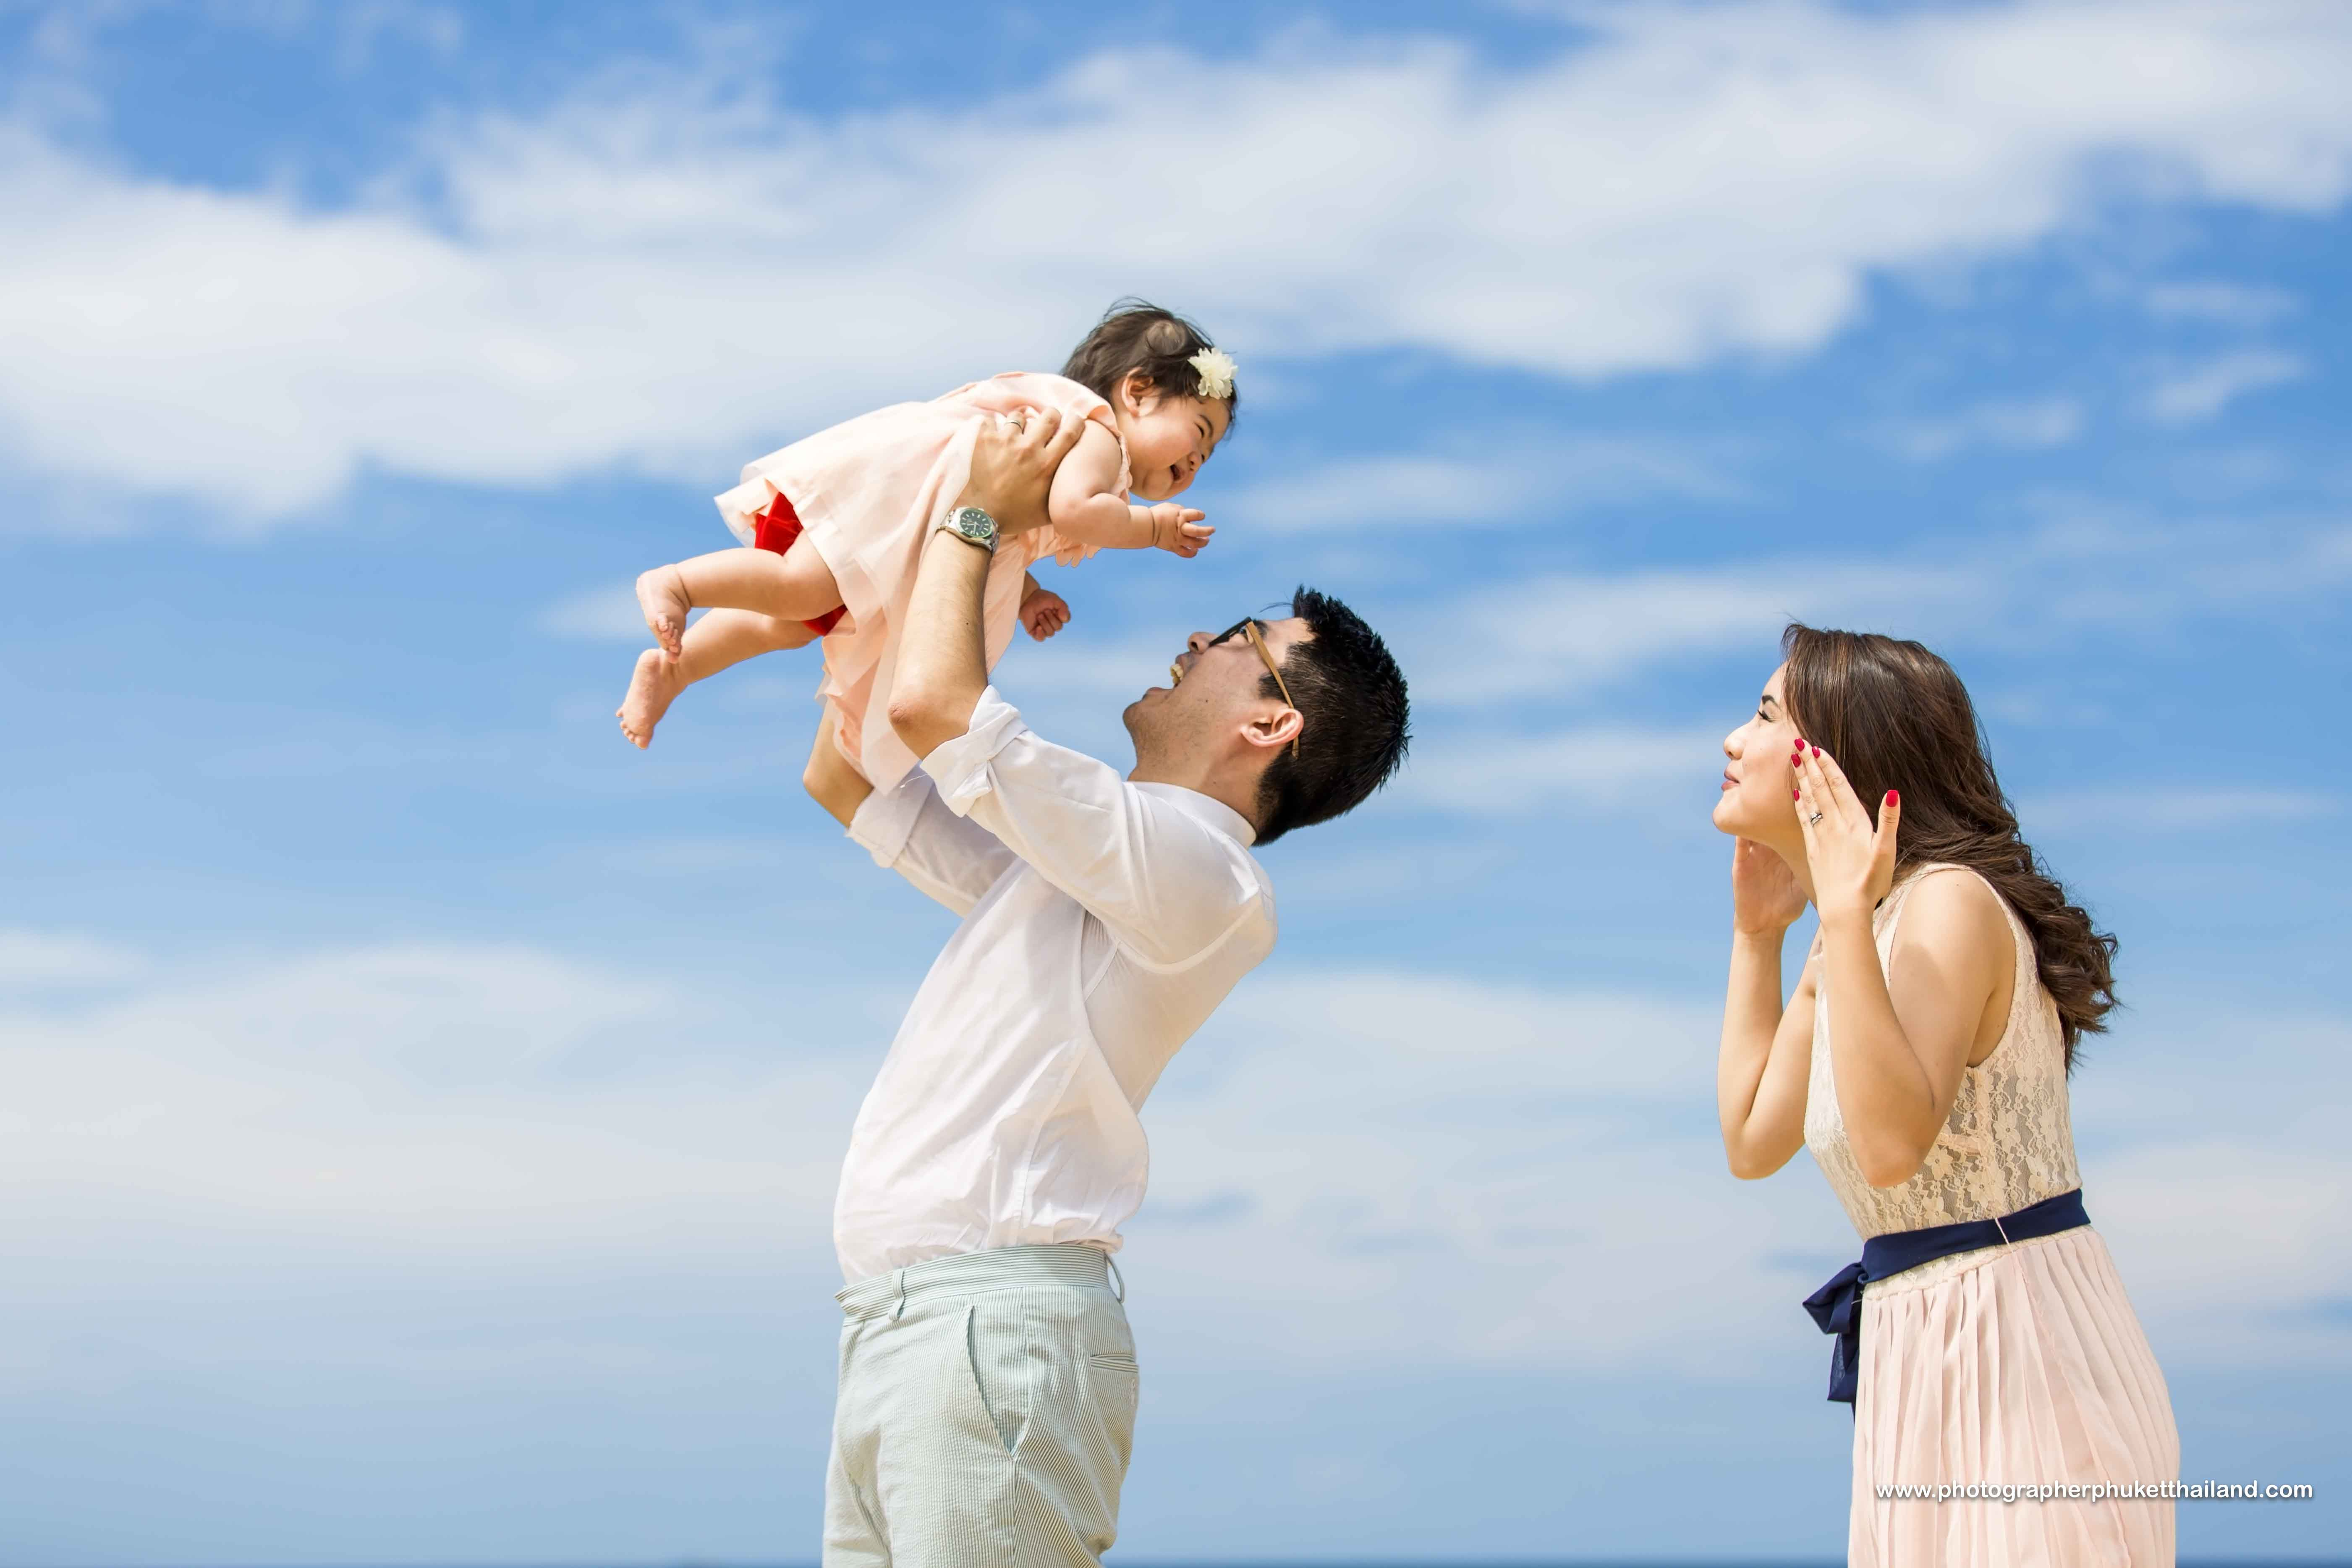 Family photoshoot at centara grand beach,karon , phuket